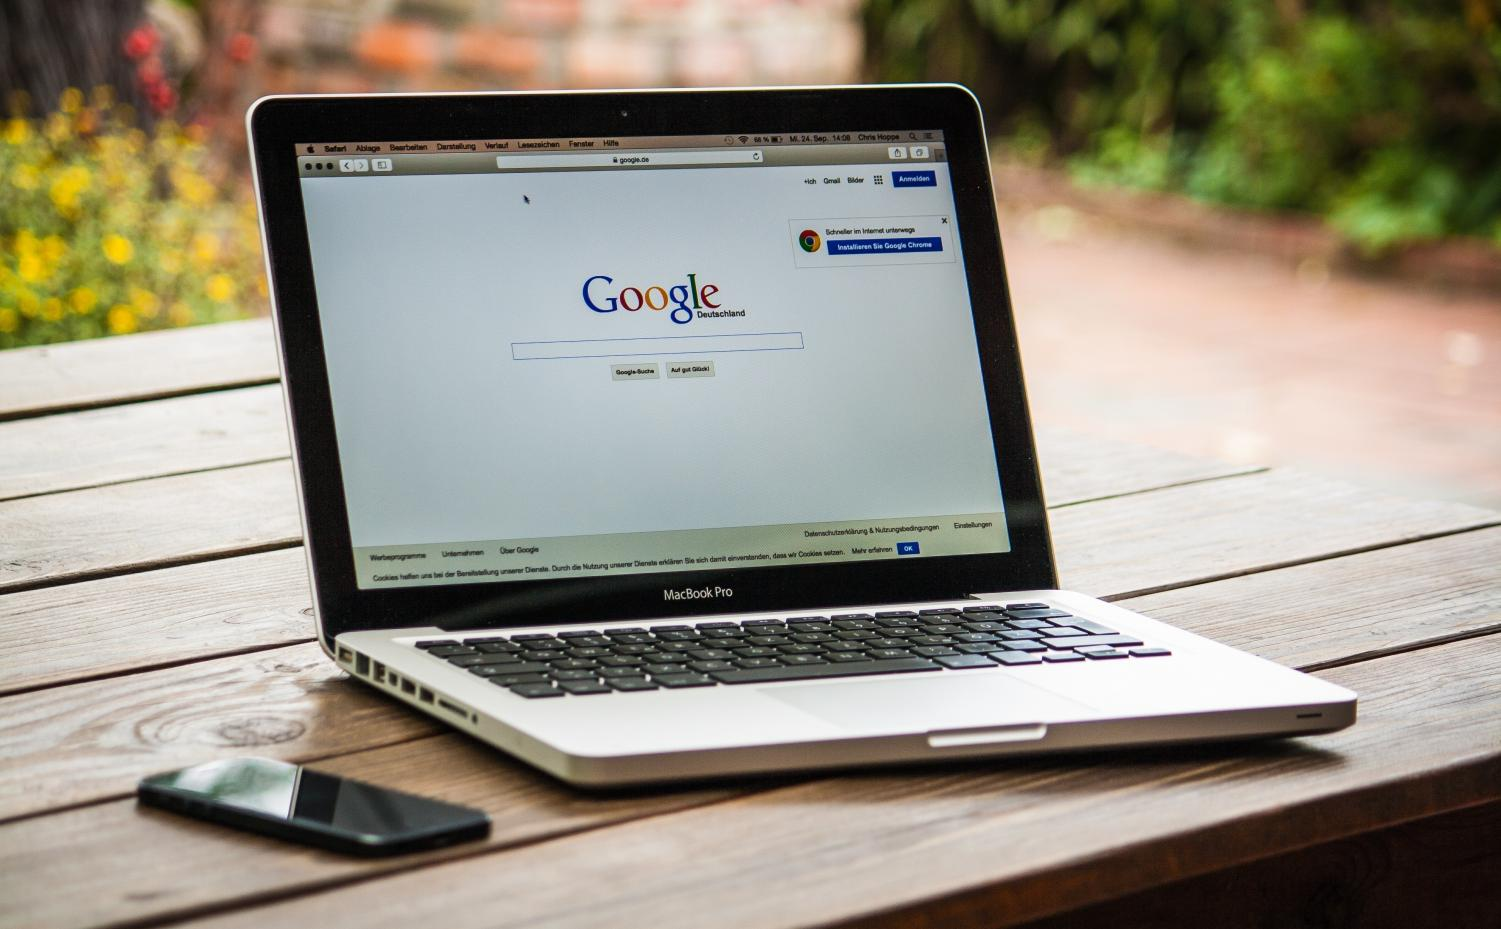 Many students use search engines like Google.